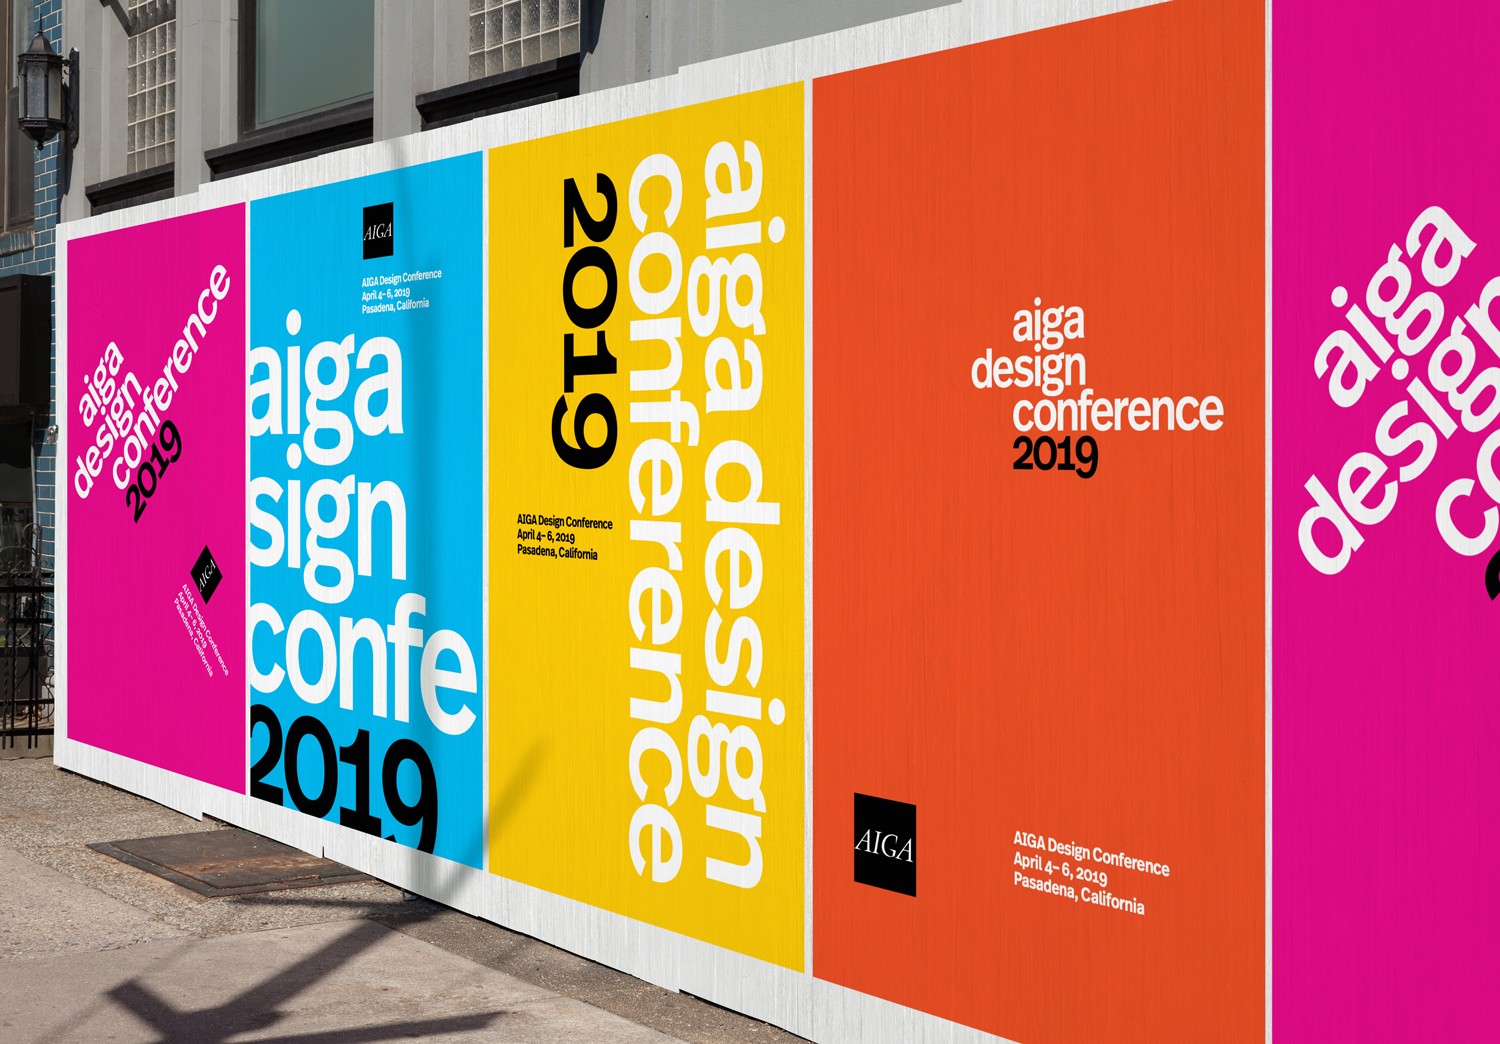 AIGA Design Conference Wall2.jpg